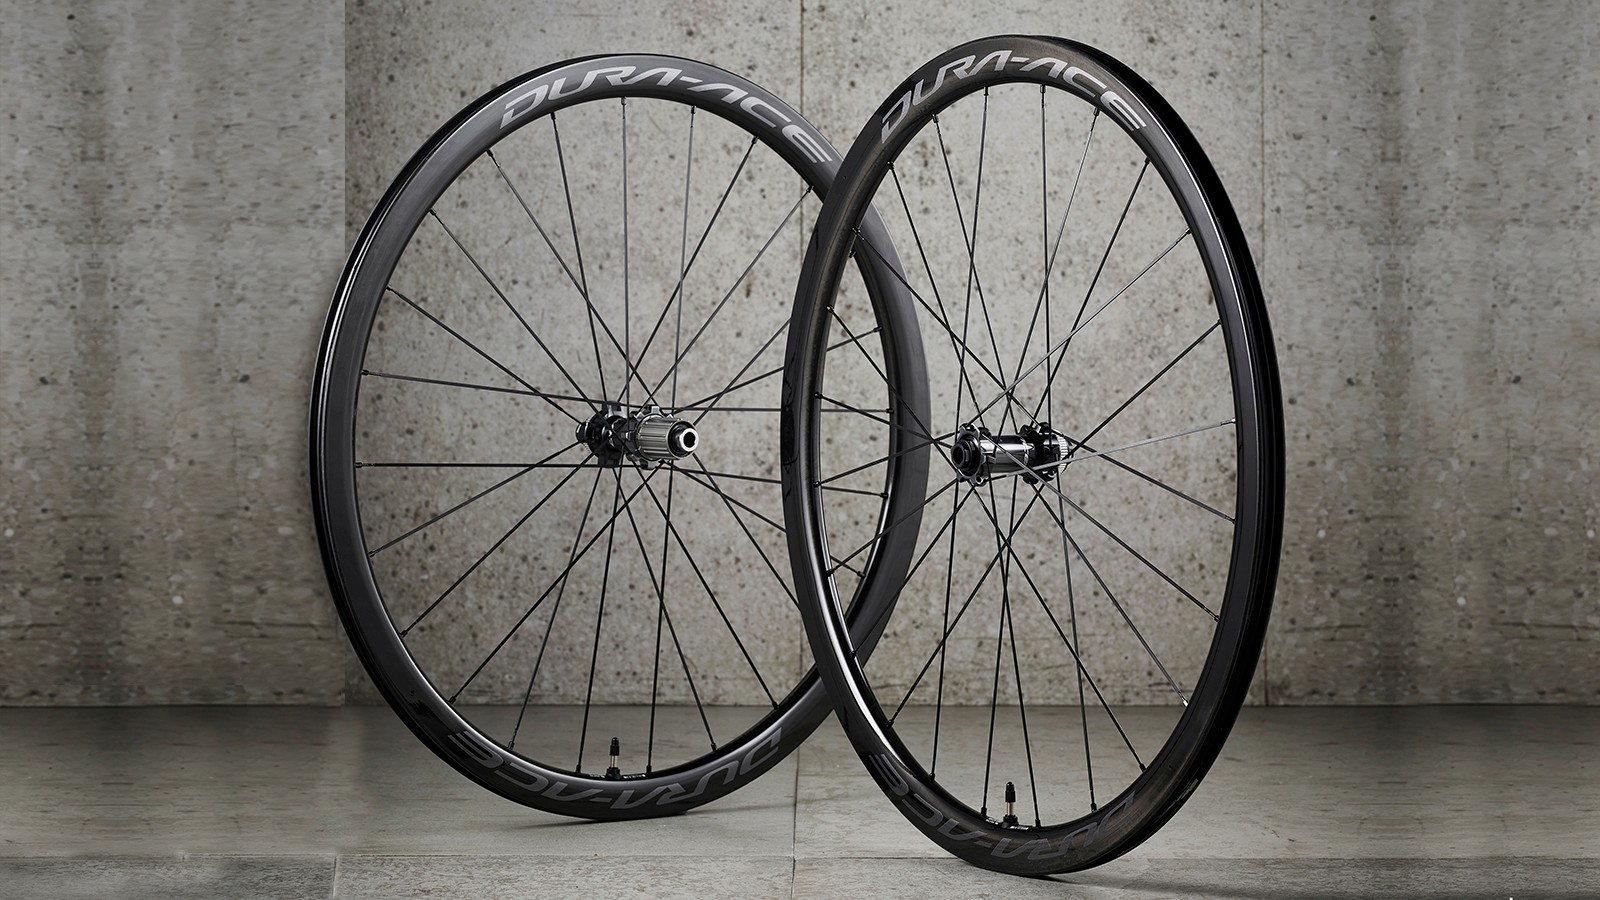 Road bike wheelset againt concrete wall